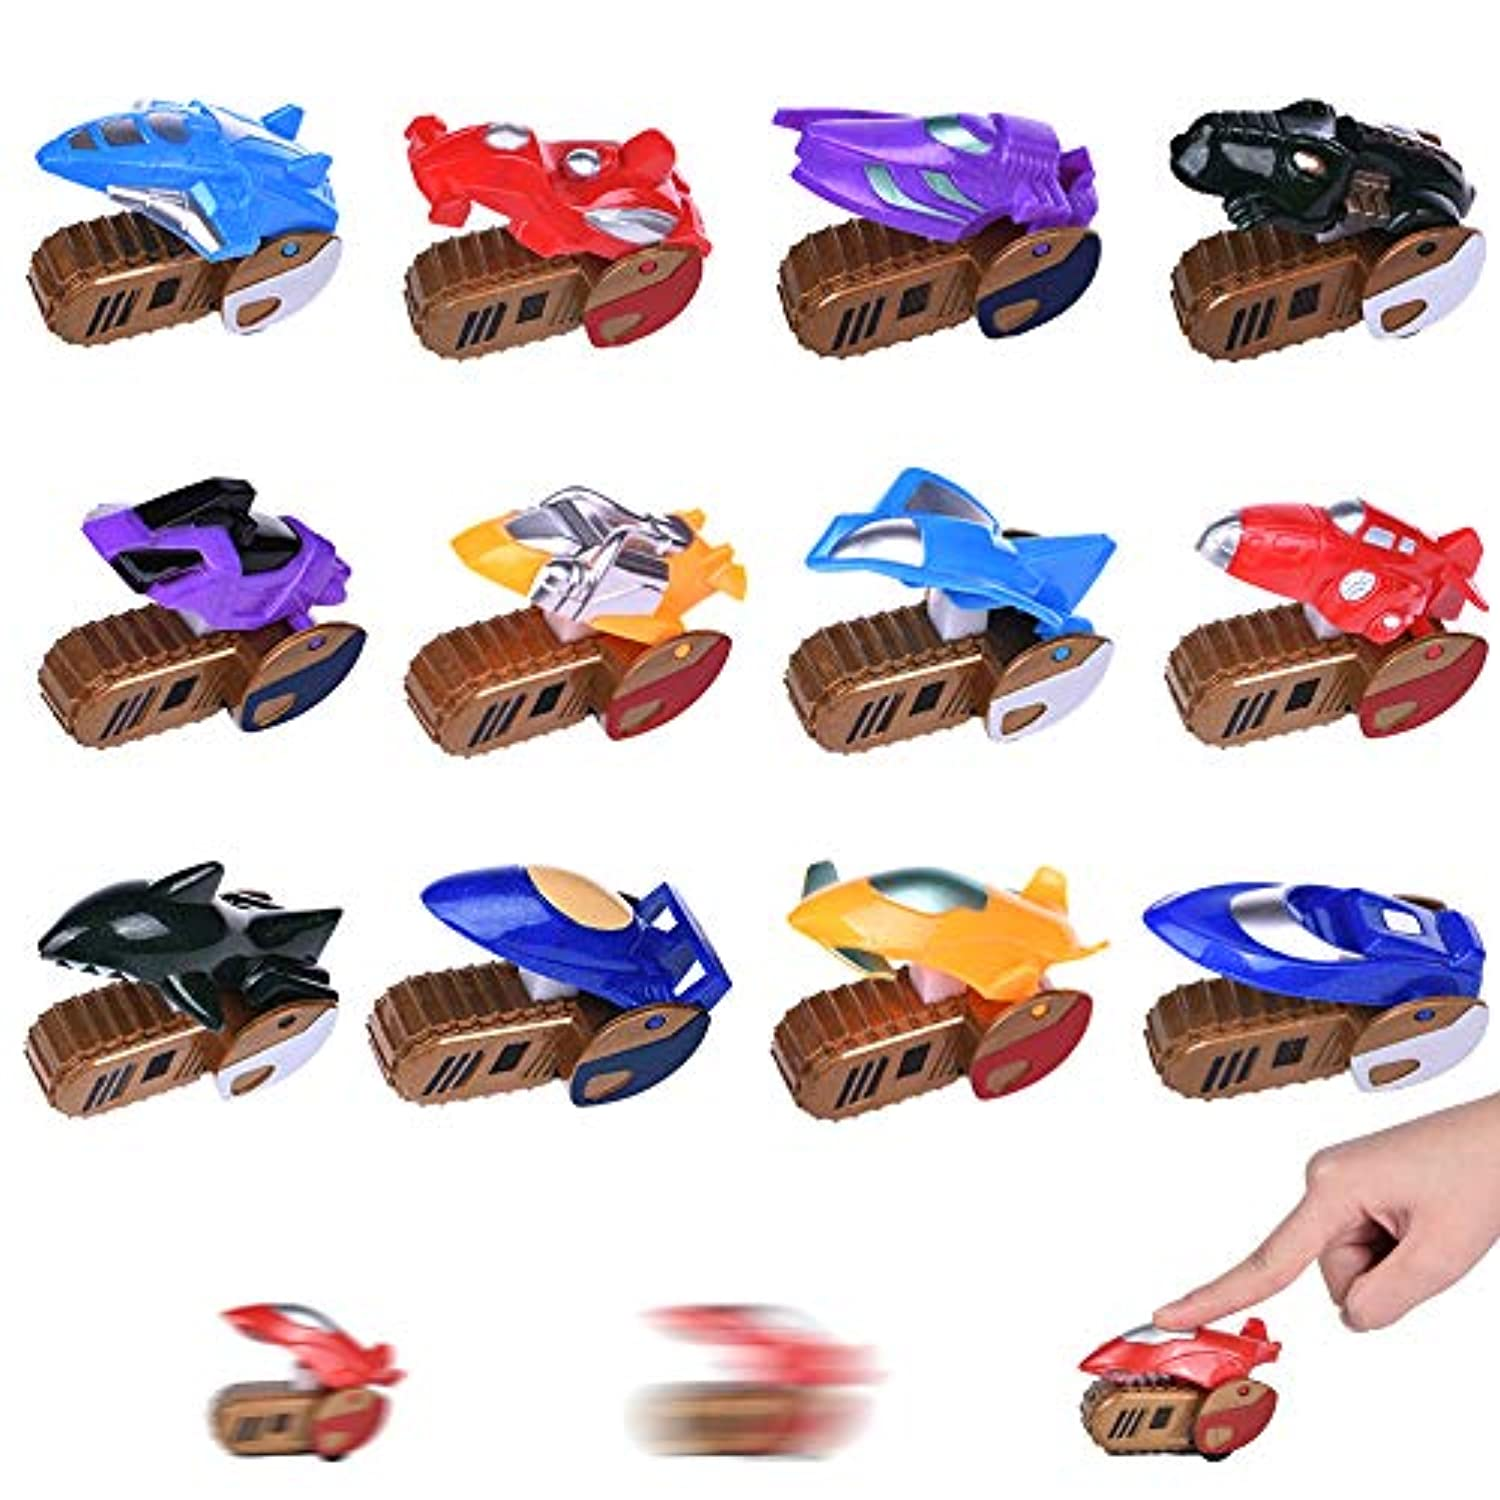 Mini Car Toys for Kids、12パックAssorted車Racing車、パーティーFavor Pinata Fillers Stocking Stuffers、Press and Go car toy playセット